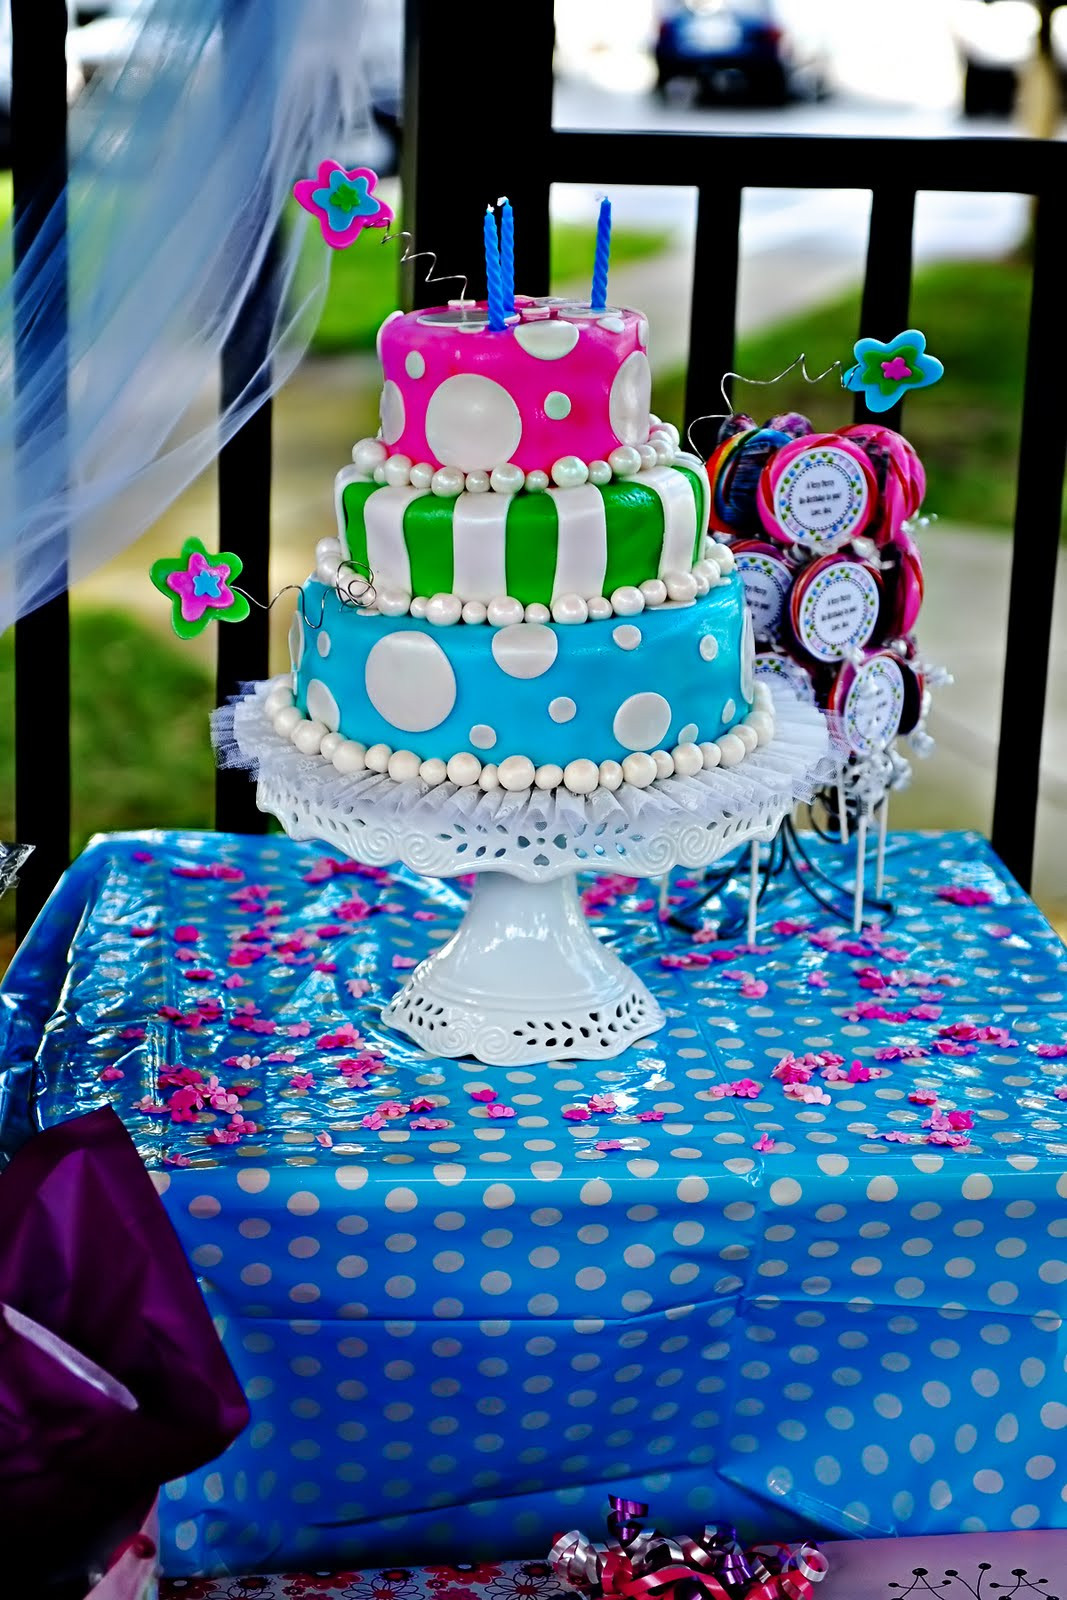 Best ideas about Alice In Wonderland Birthday Decorations . Save or Pin Kara s Party Ideas Alice In Wonderland Tea Party Now.